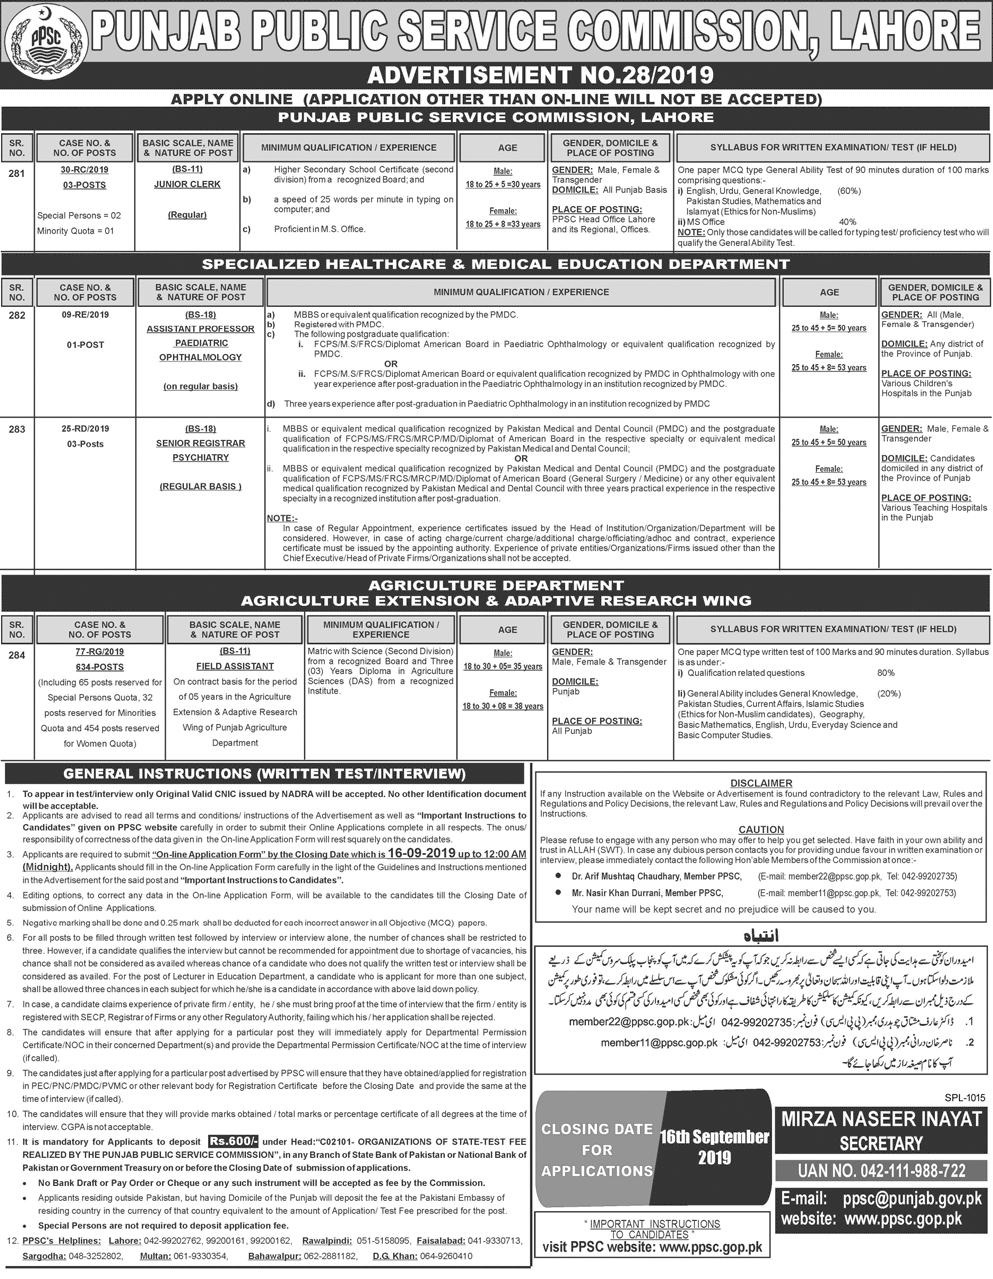 PPSC Vacancies 2019 in Agriculture